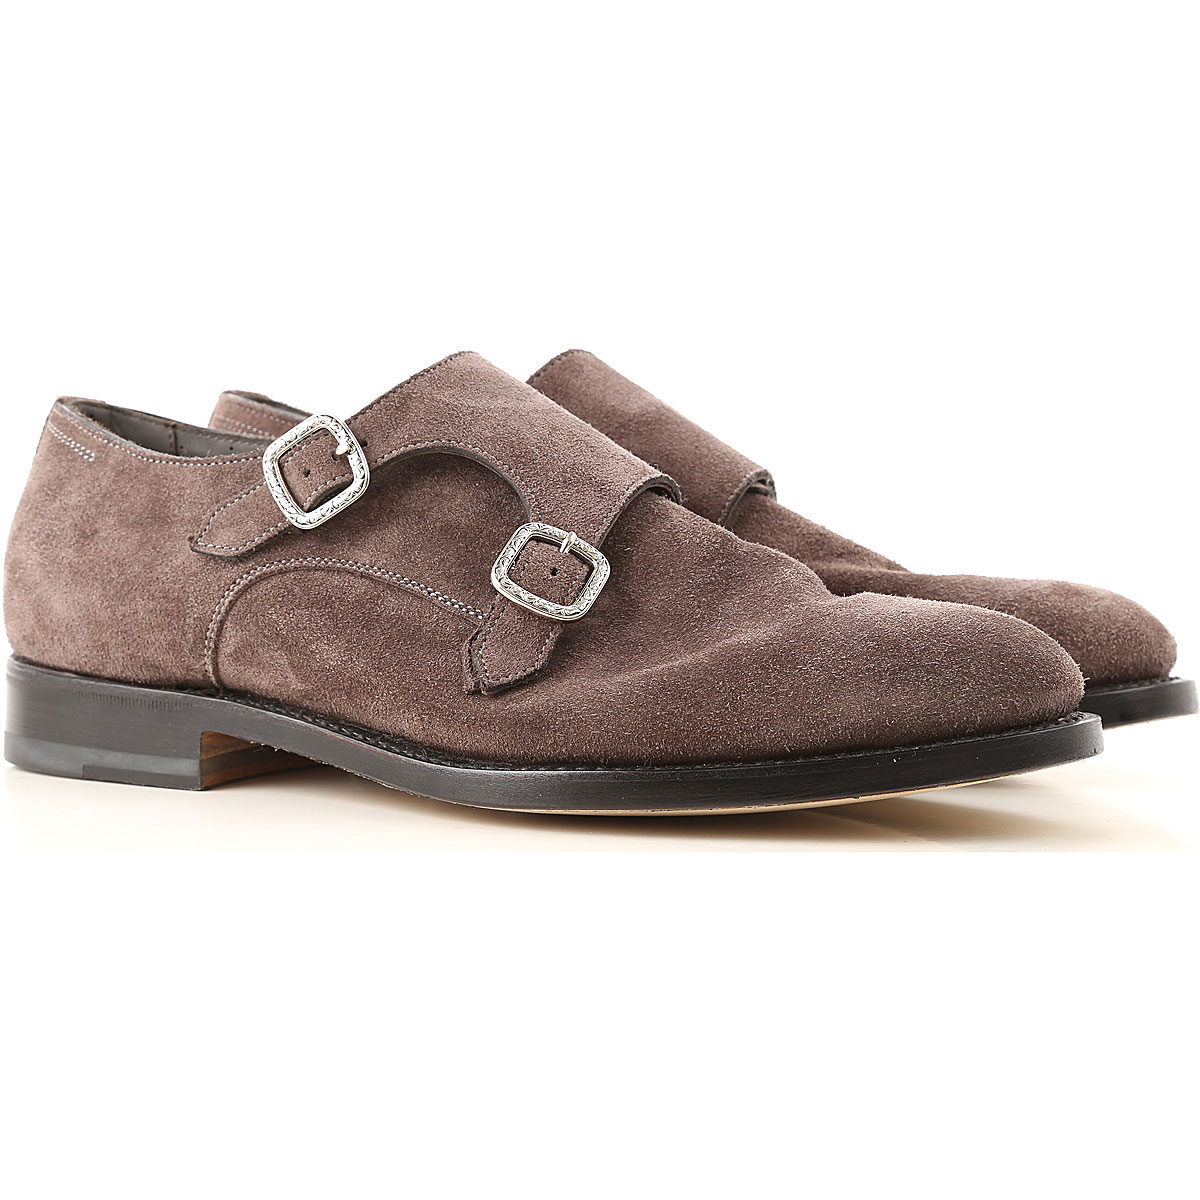 Santoni Brogue Shoes On Sale in Outlet, Brown, Suede leather, 2019, 8 9.5